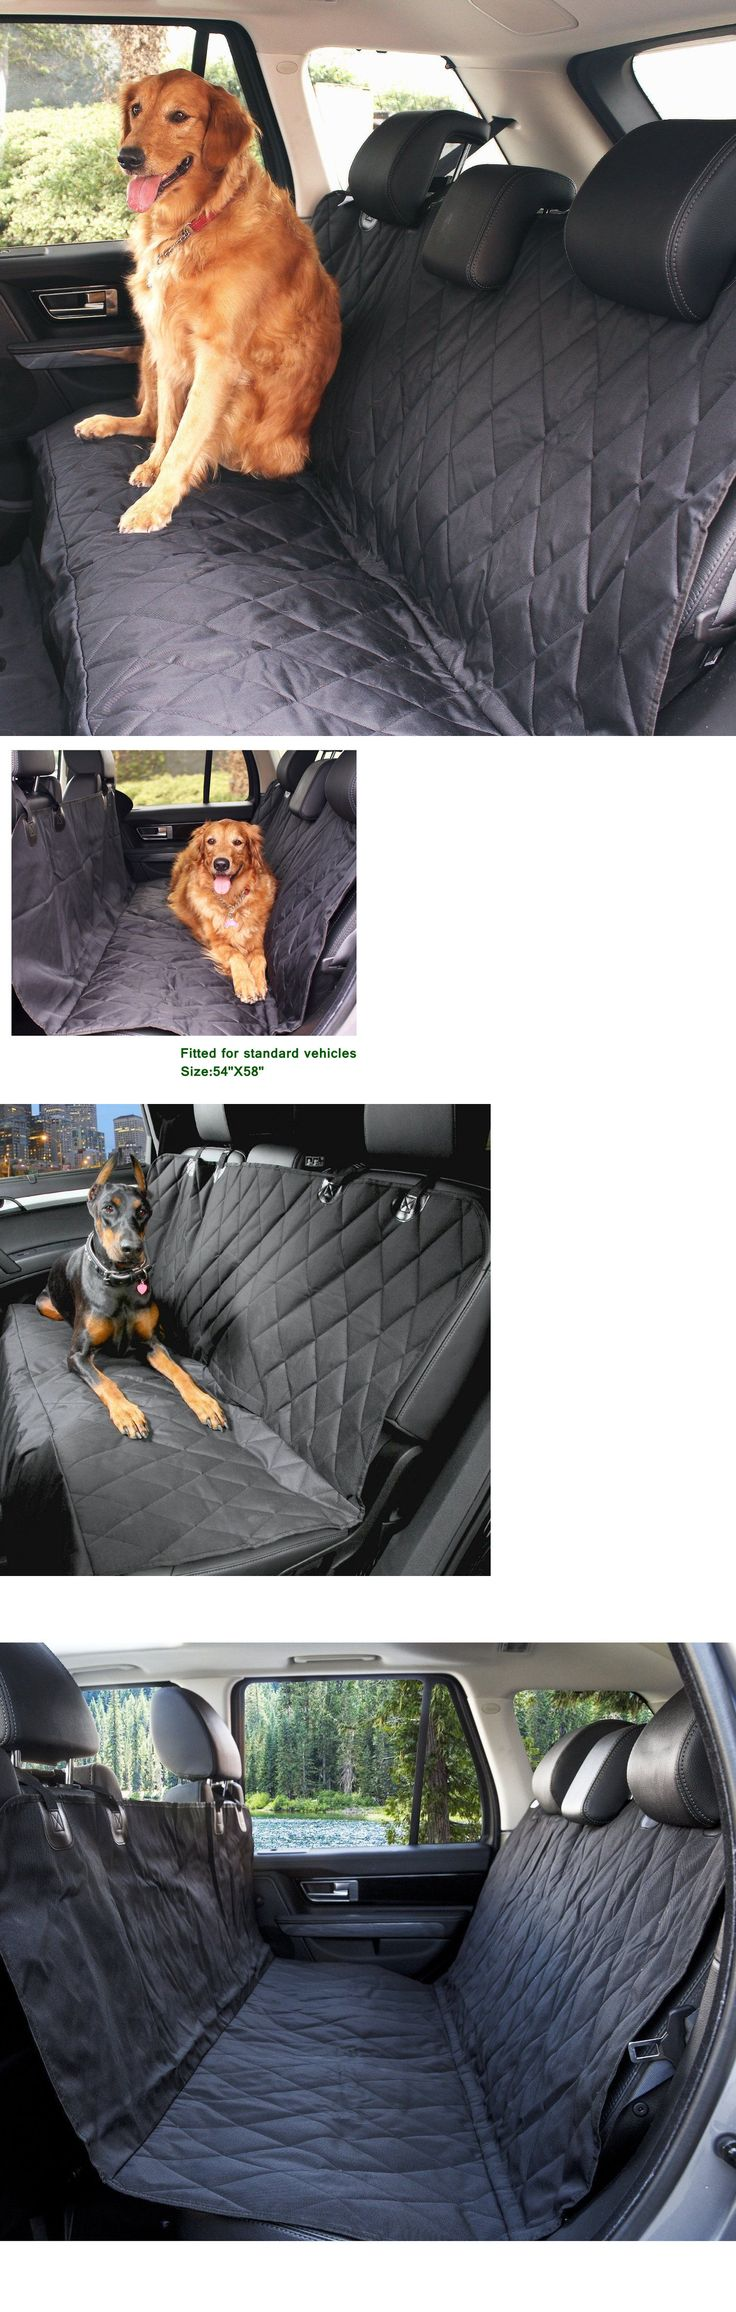 Car Seat Covers 117426: Oxgord Pet Car Suv Van Back Rear Bench Seat Cover Waterproof Hammock For Dog Cat BUY IT NOW ONLY: $30.77